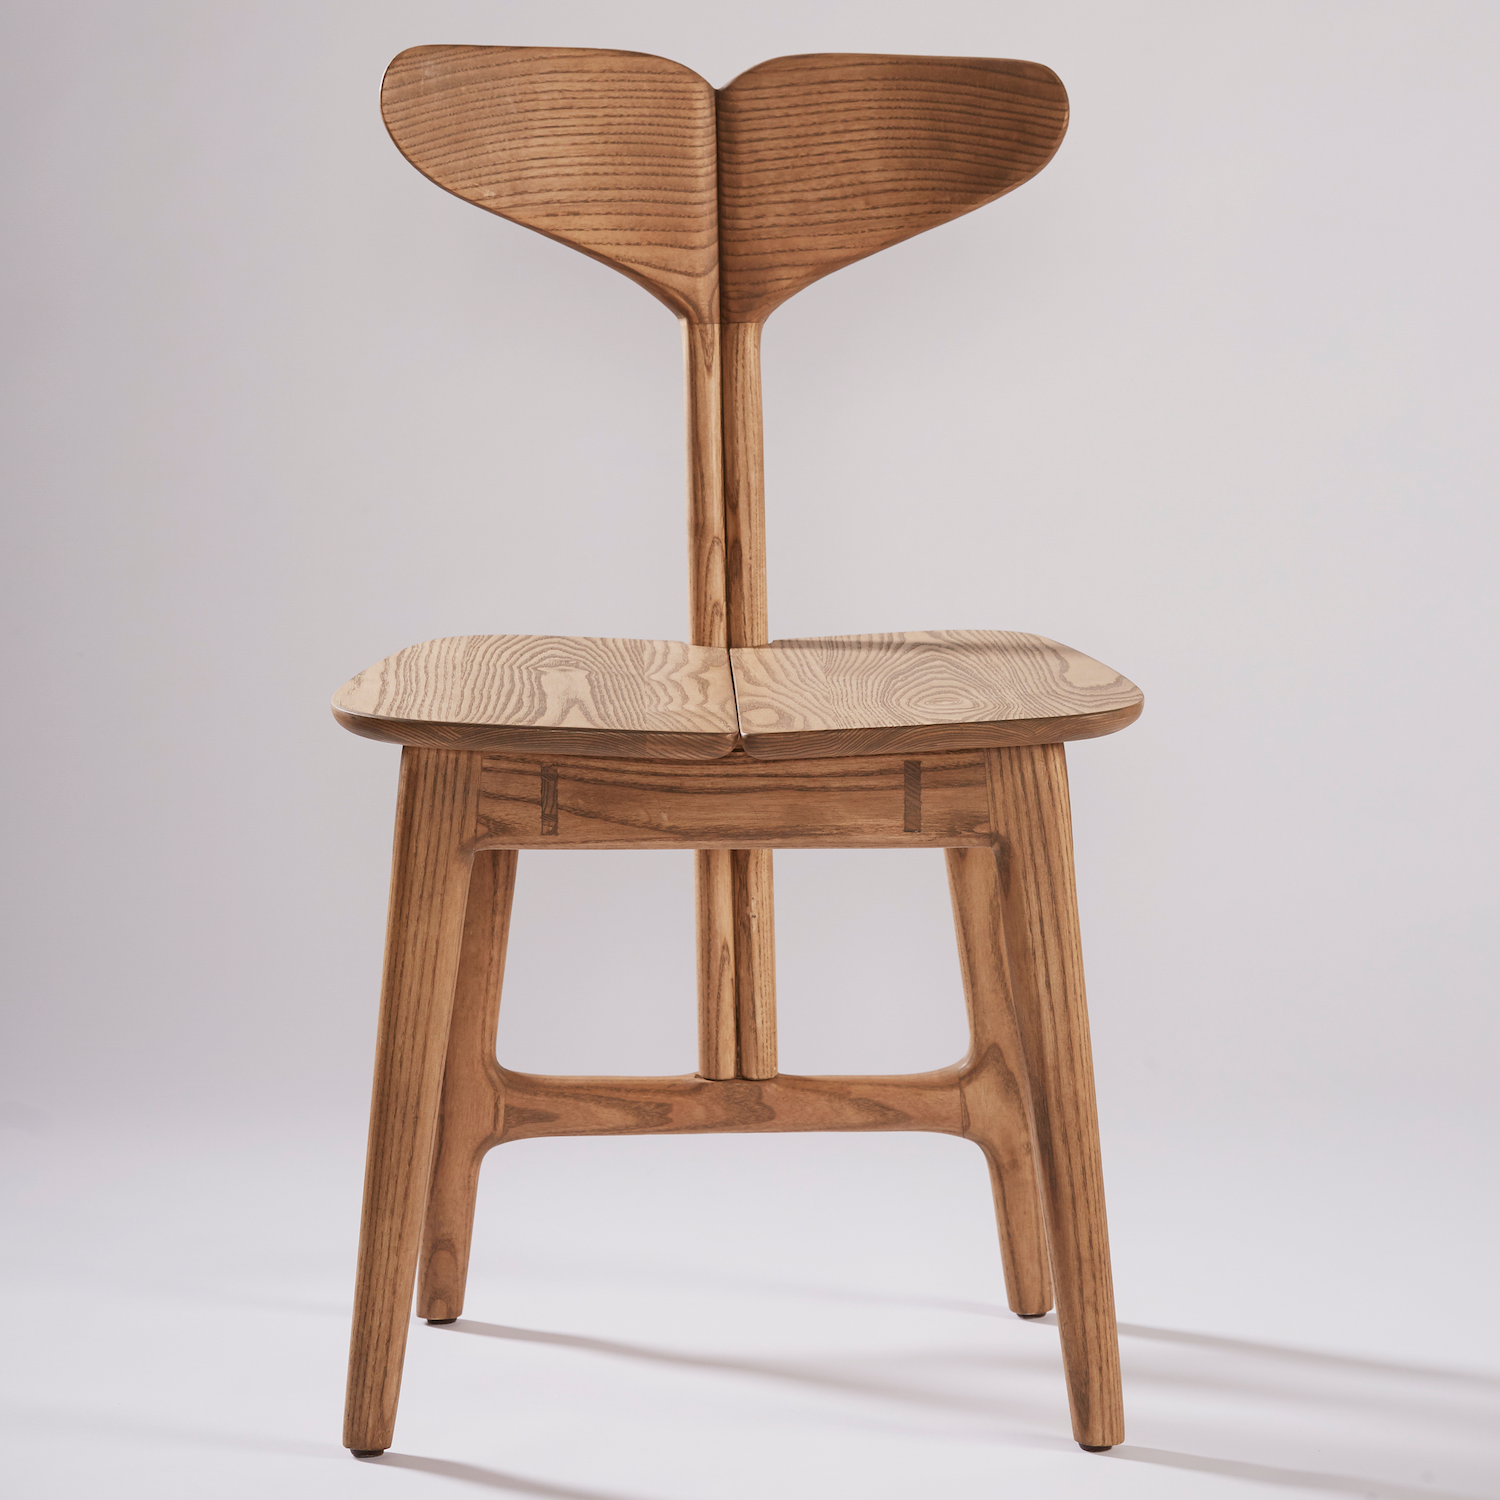 WHALE TAIL DINING CHAIR by Meyer Von Wielligh at SARZA. Chairs, dining chair, furniture, Meyer Von Wielligh, oak, whale tail